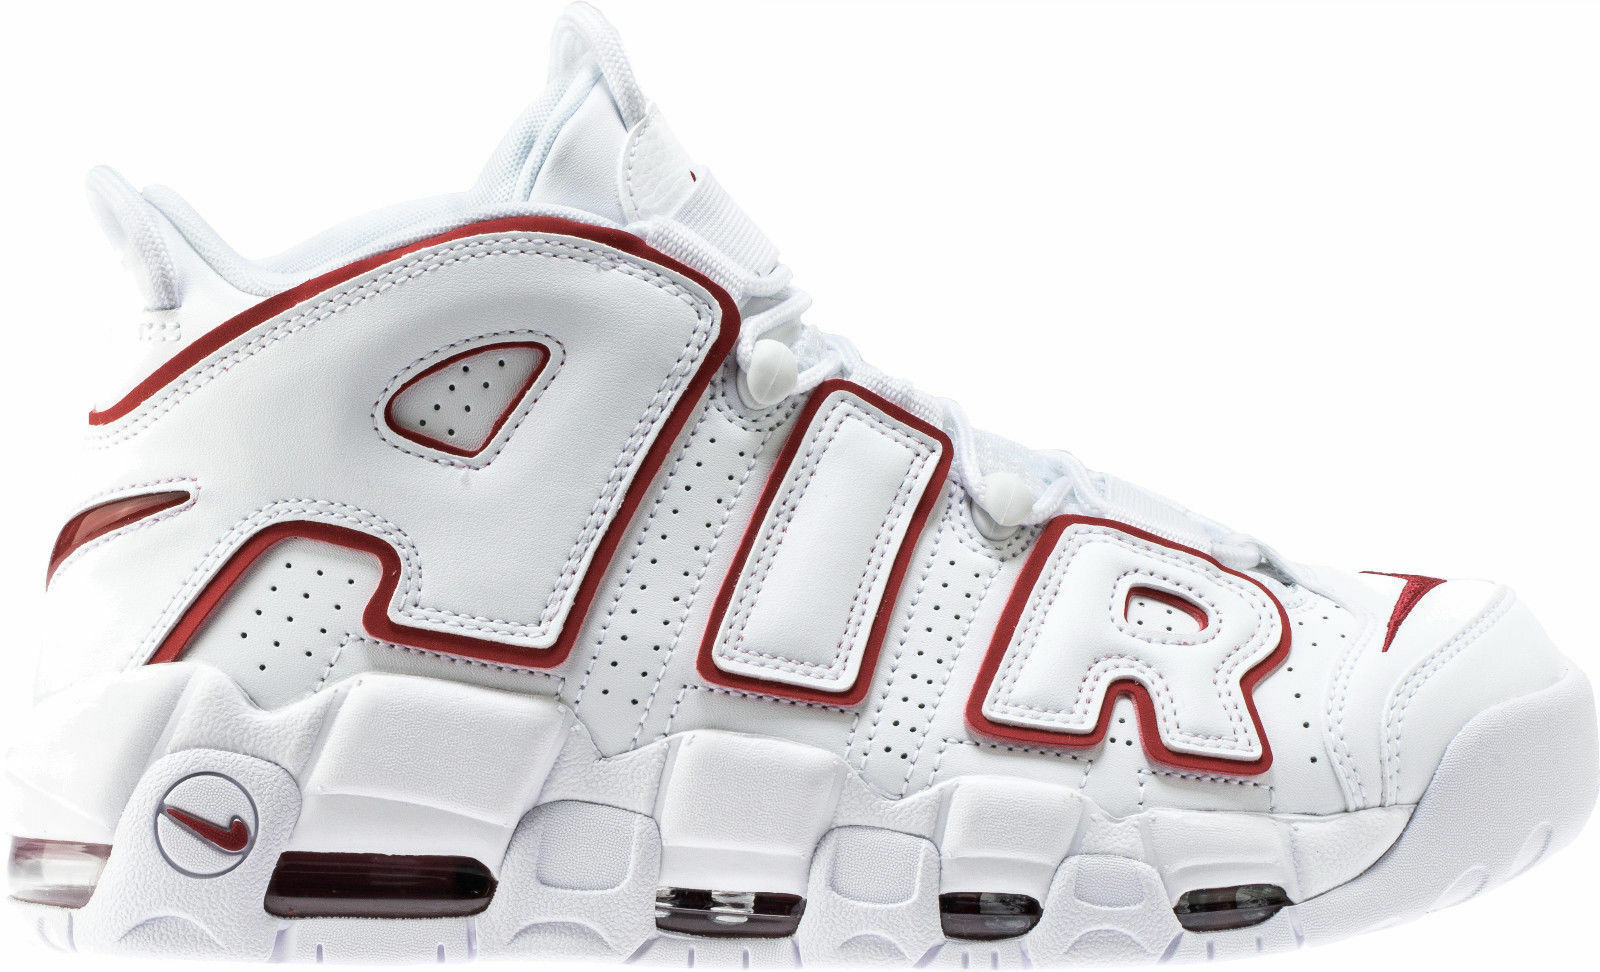 Nike Air More Uptempo 96 White Varsity Red Size 13. 921948-102 Pippen